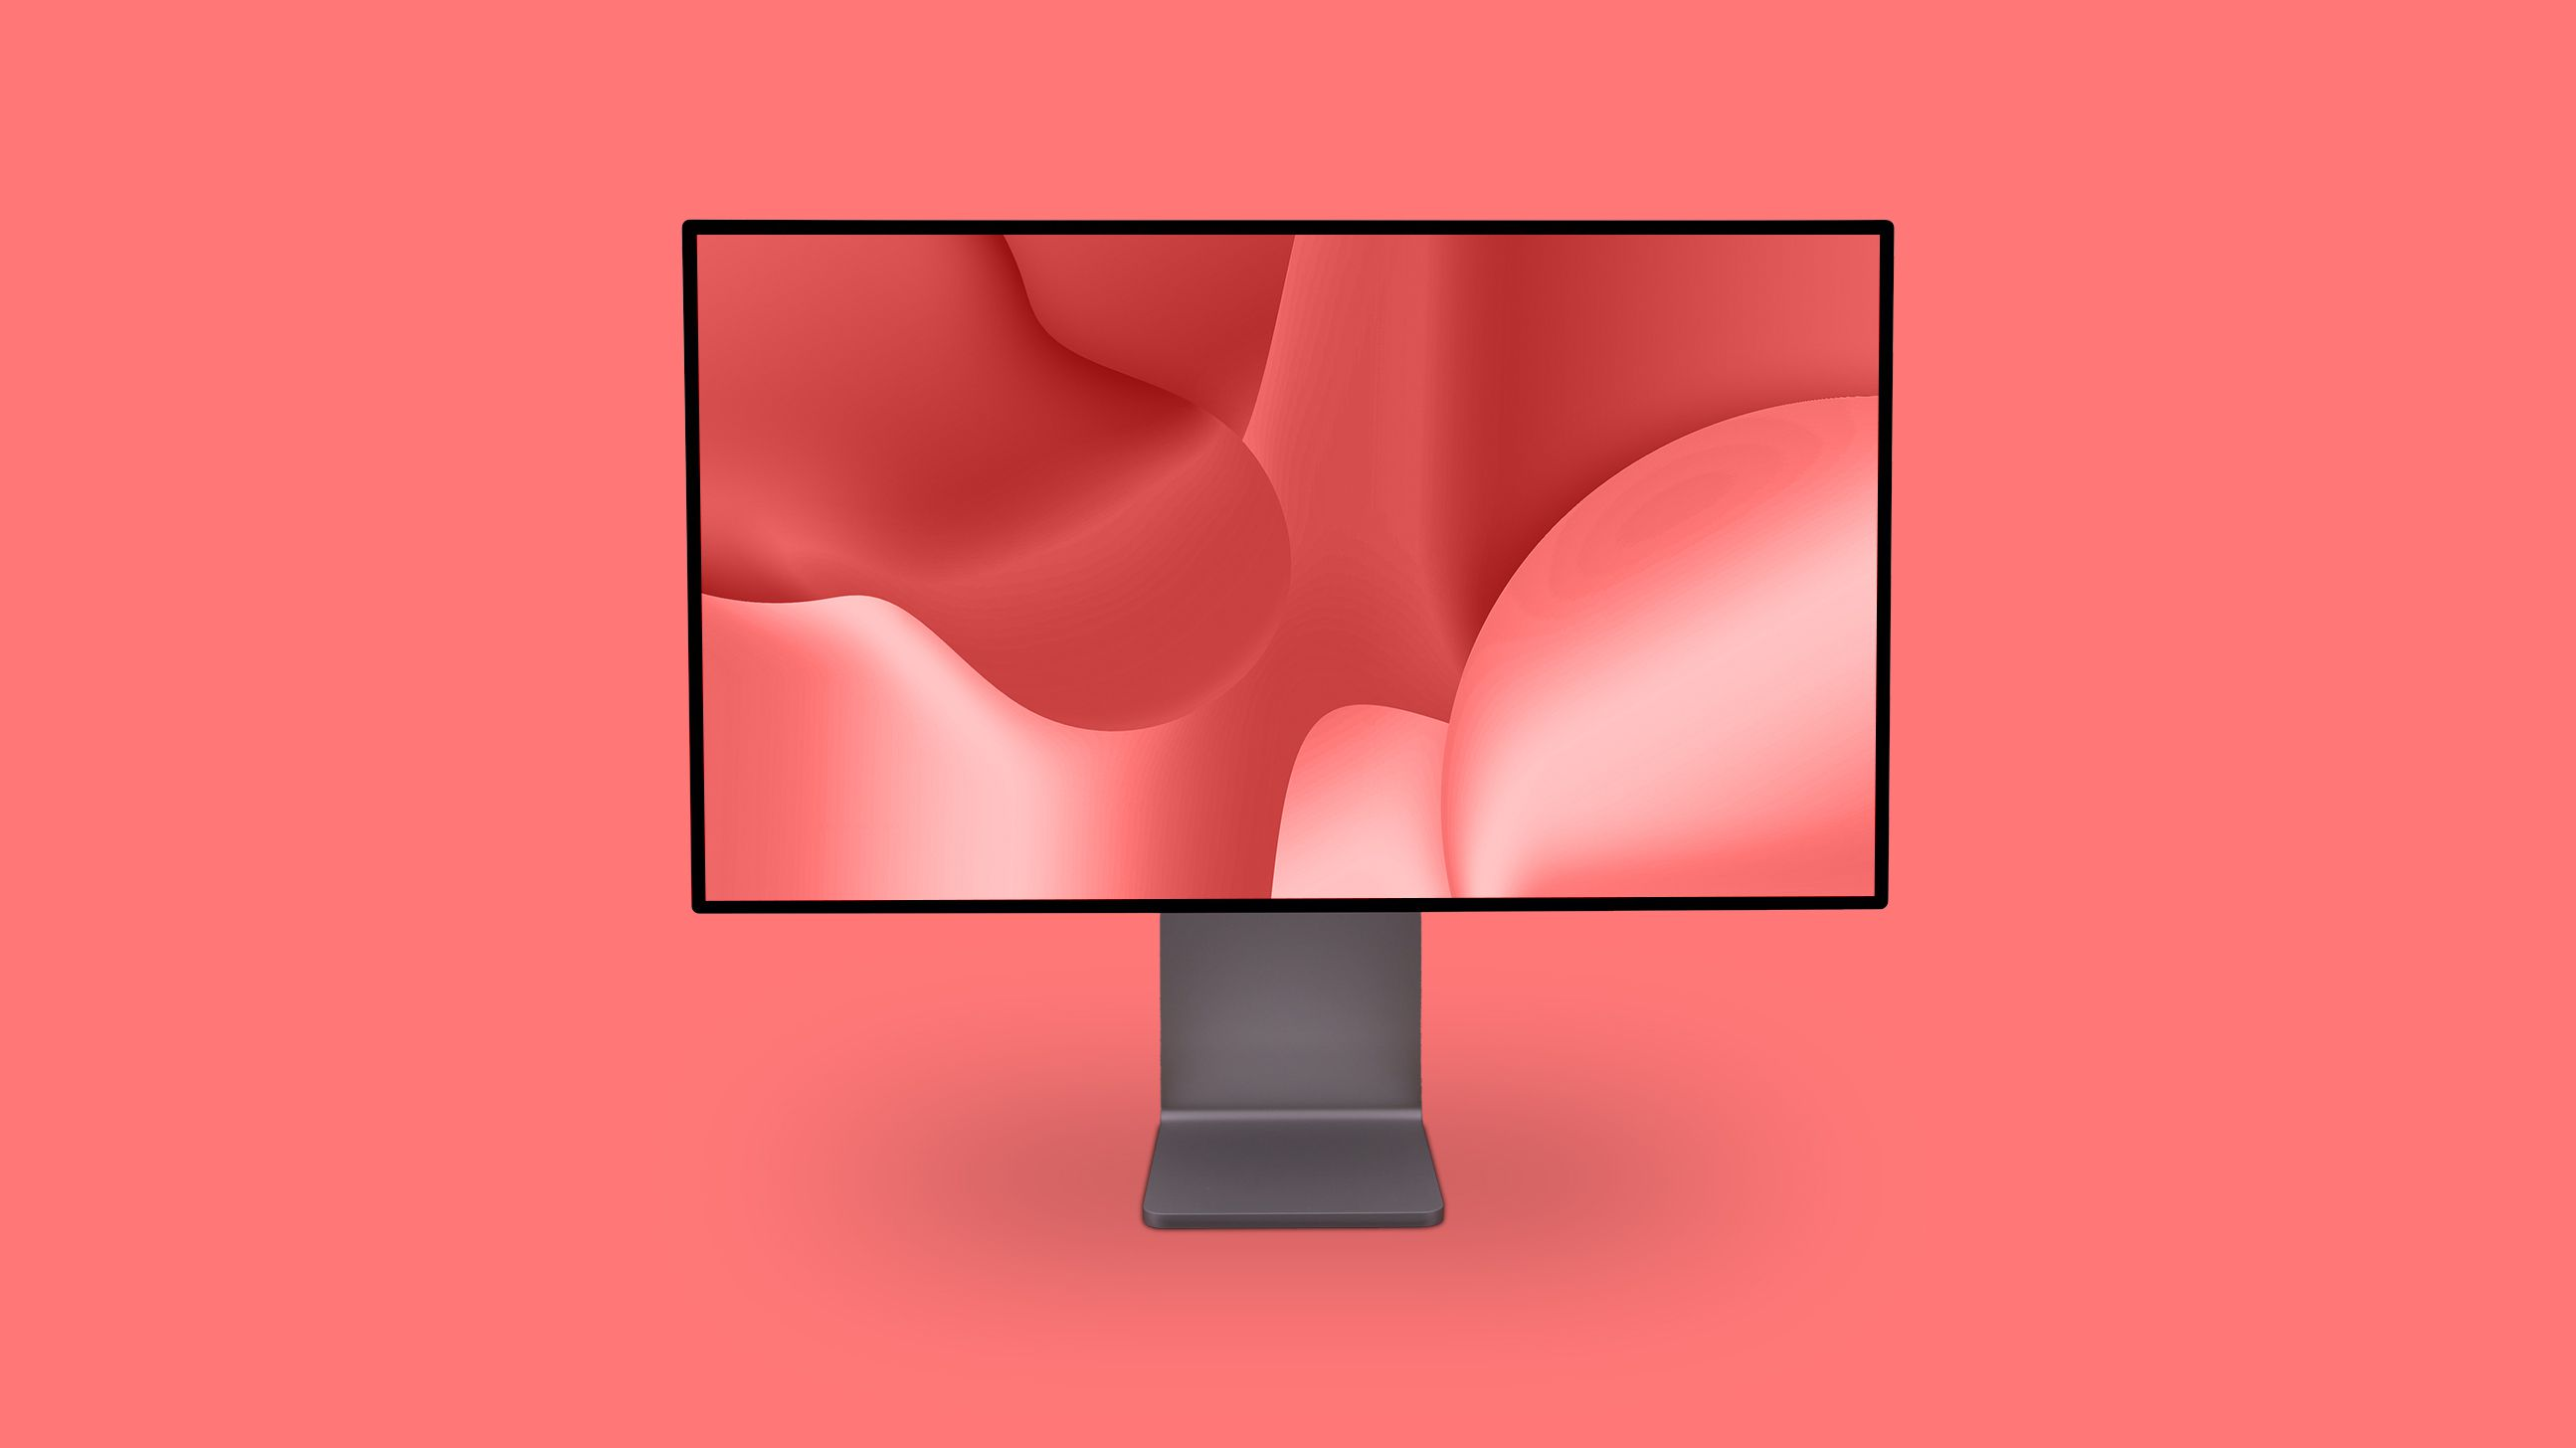 Apple Rumored to Launch Lower-Priced 27-Inch Version of Pro Display XDR With ProMotion in Early 2022